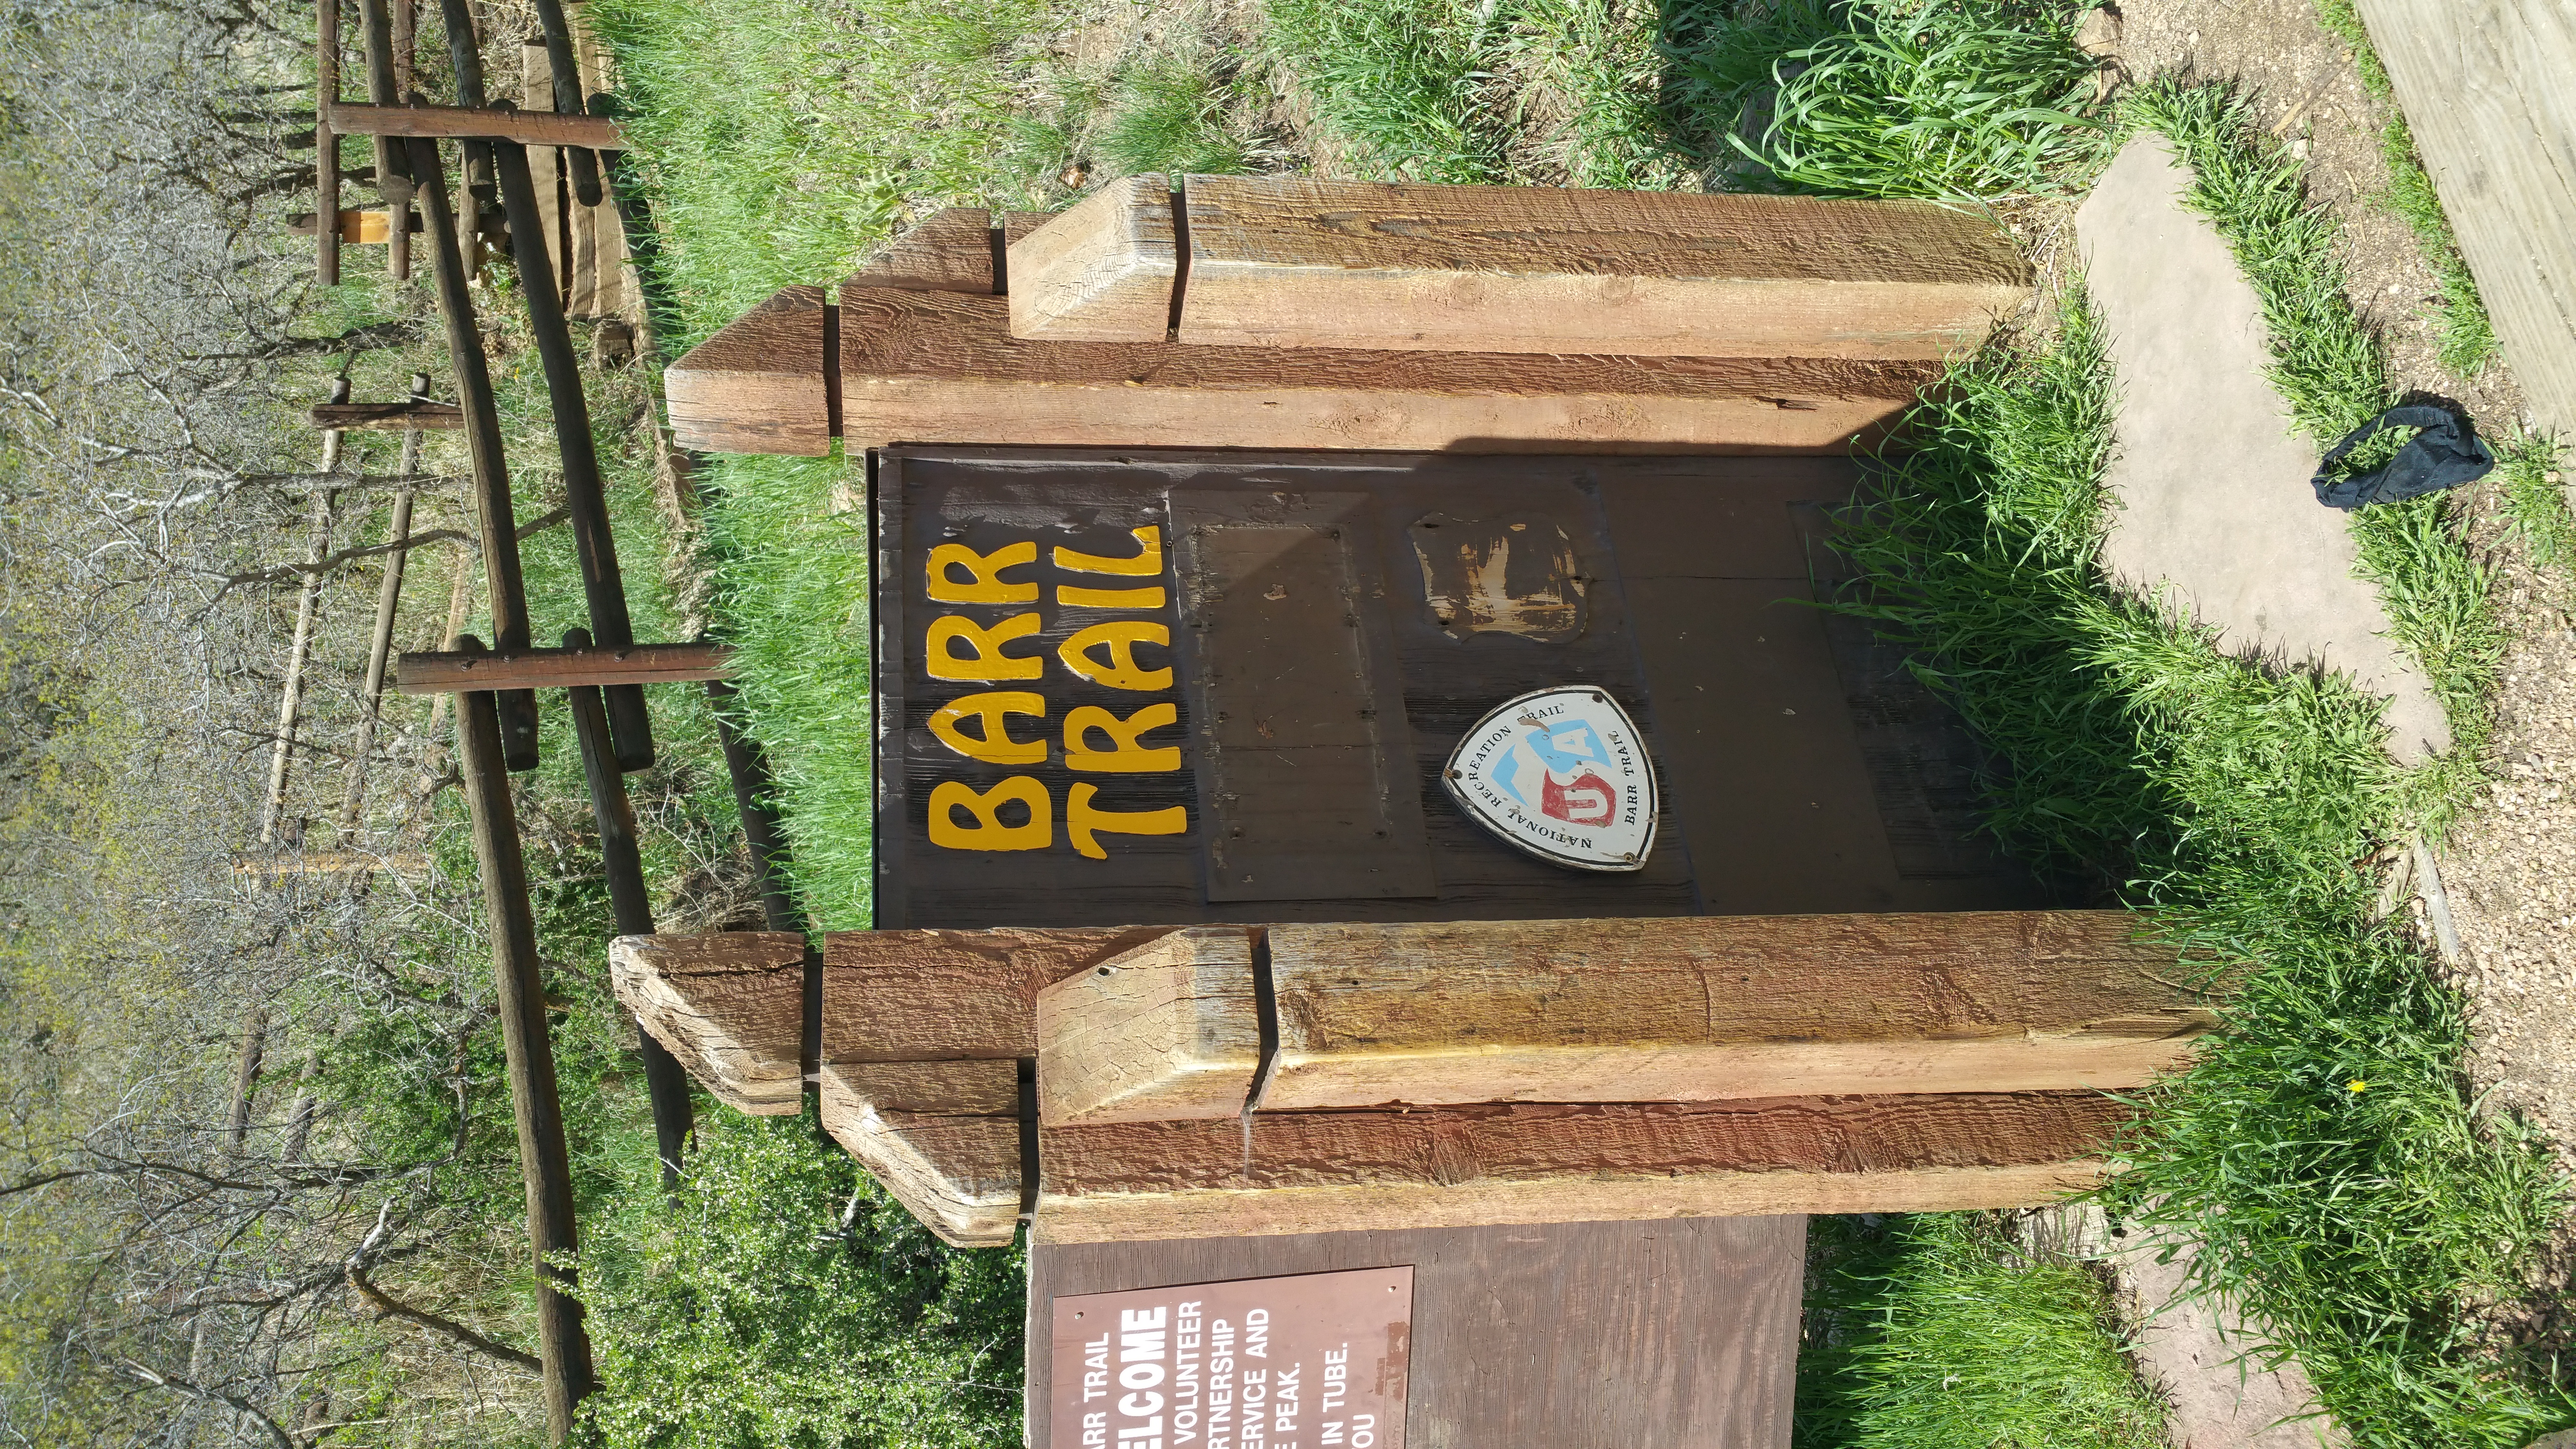 The trail head sign. Hikers can pay $5 for parking at the trail head or they can park down in town and take the shuttle for free.